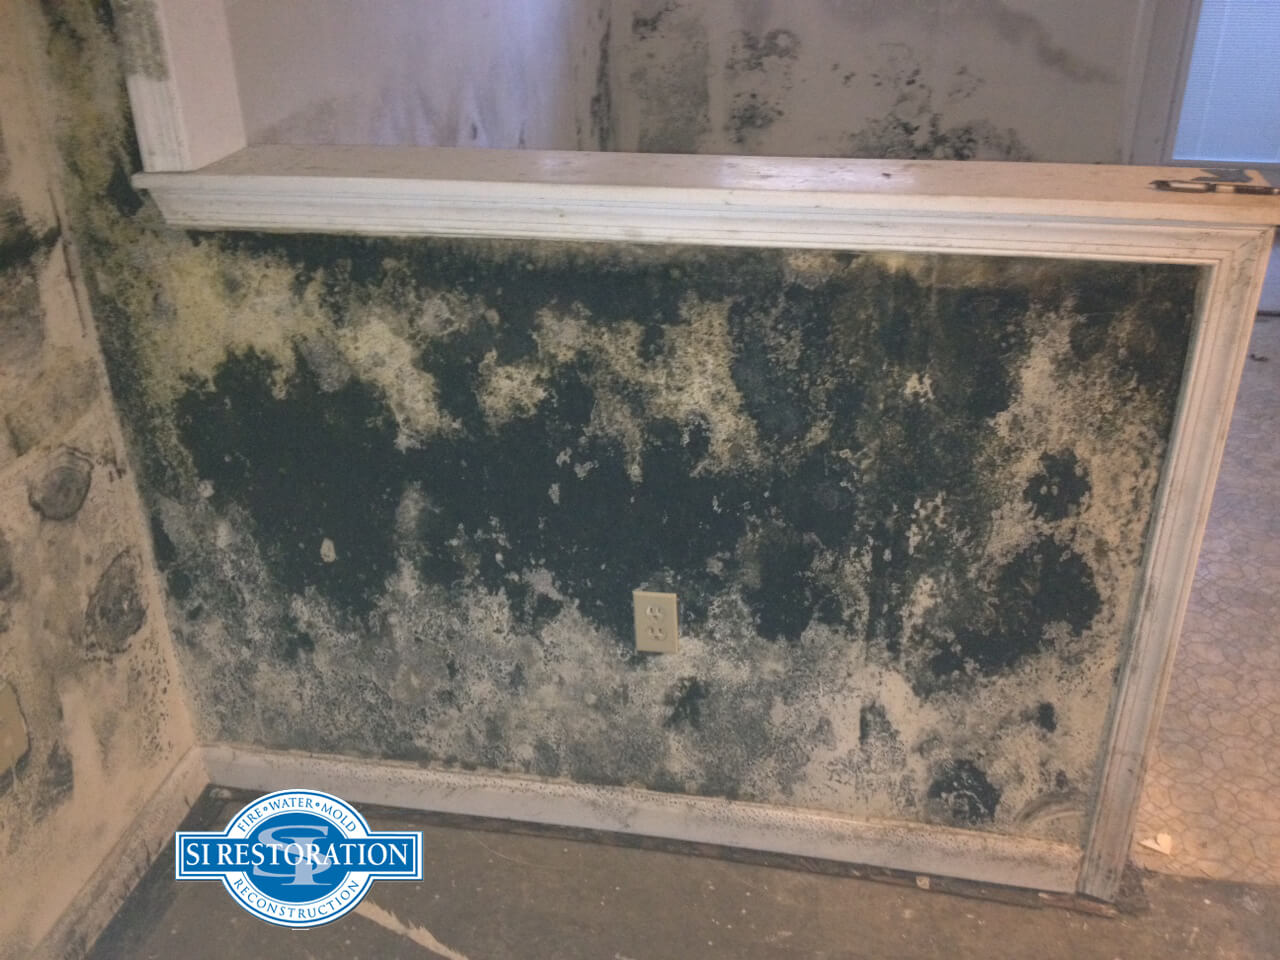 Costs Ociated With Mold And Mildew Removal